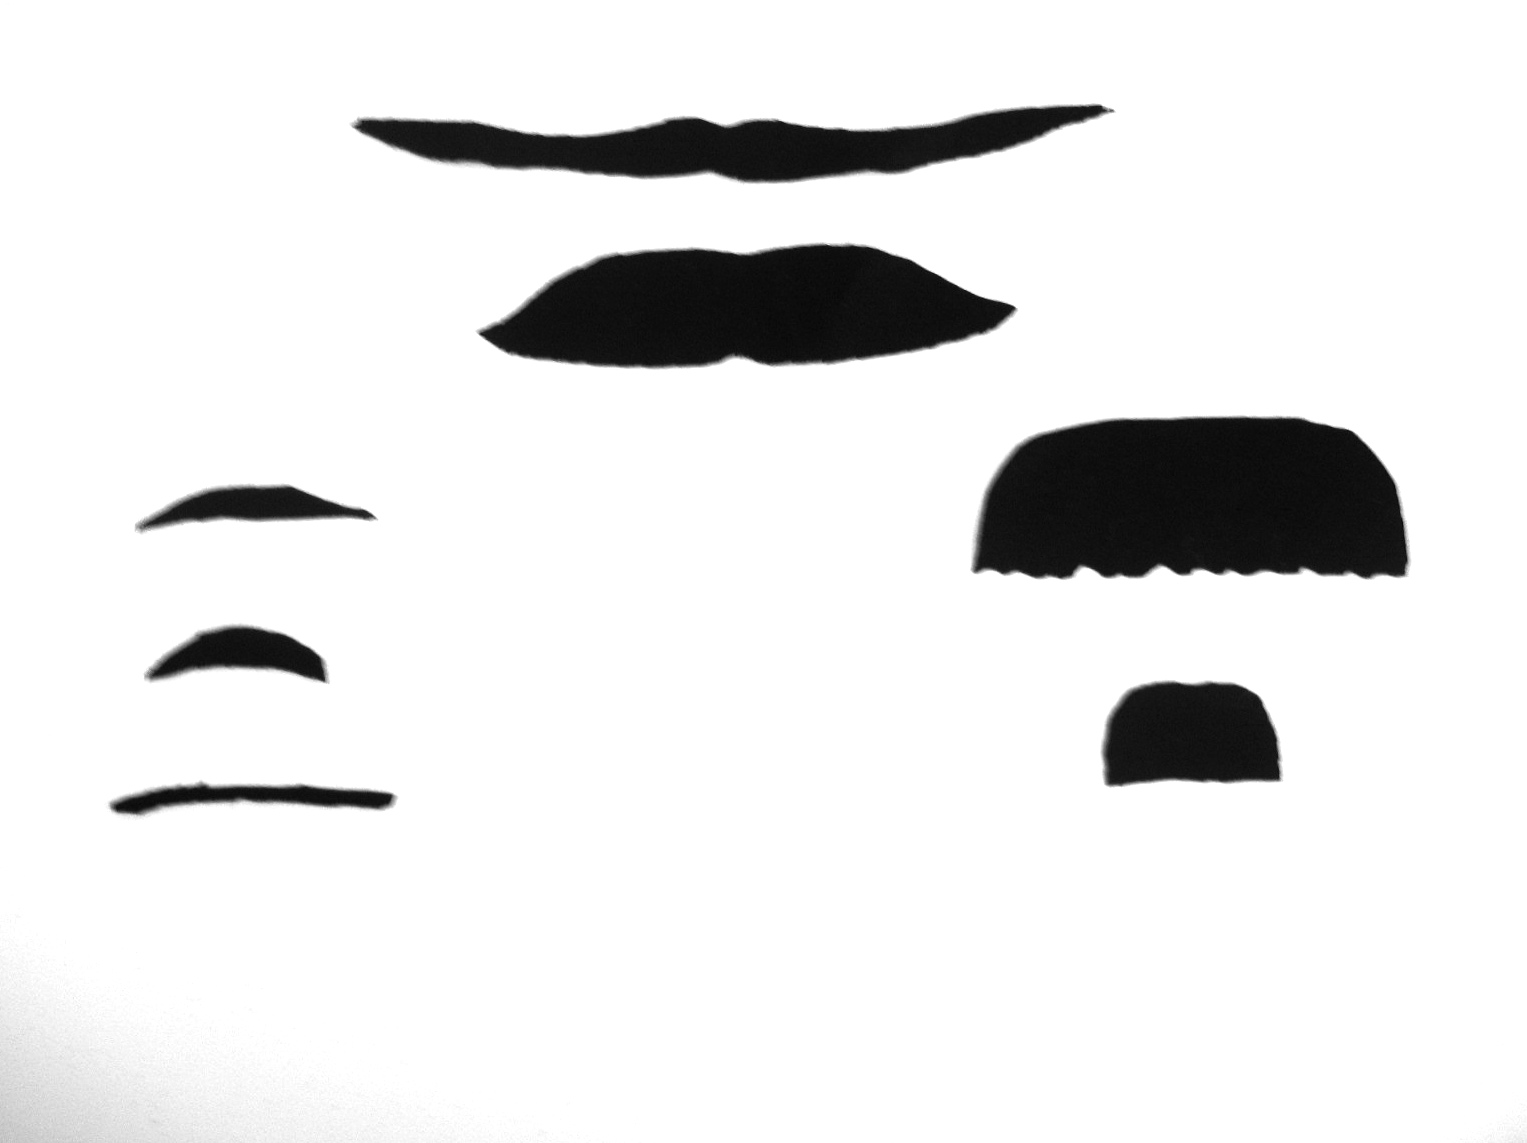 Mustaches Clipart - ClipArt Best - 111.0KB